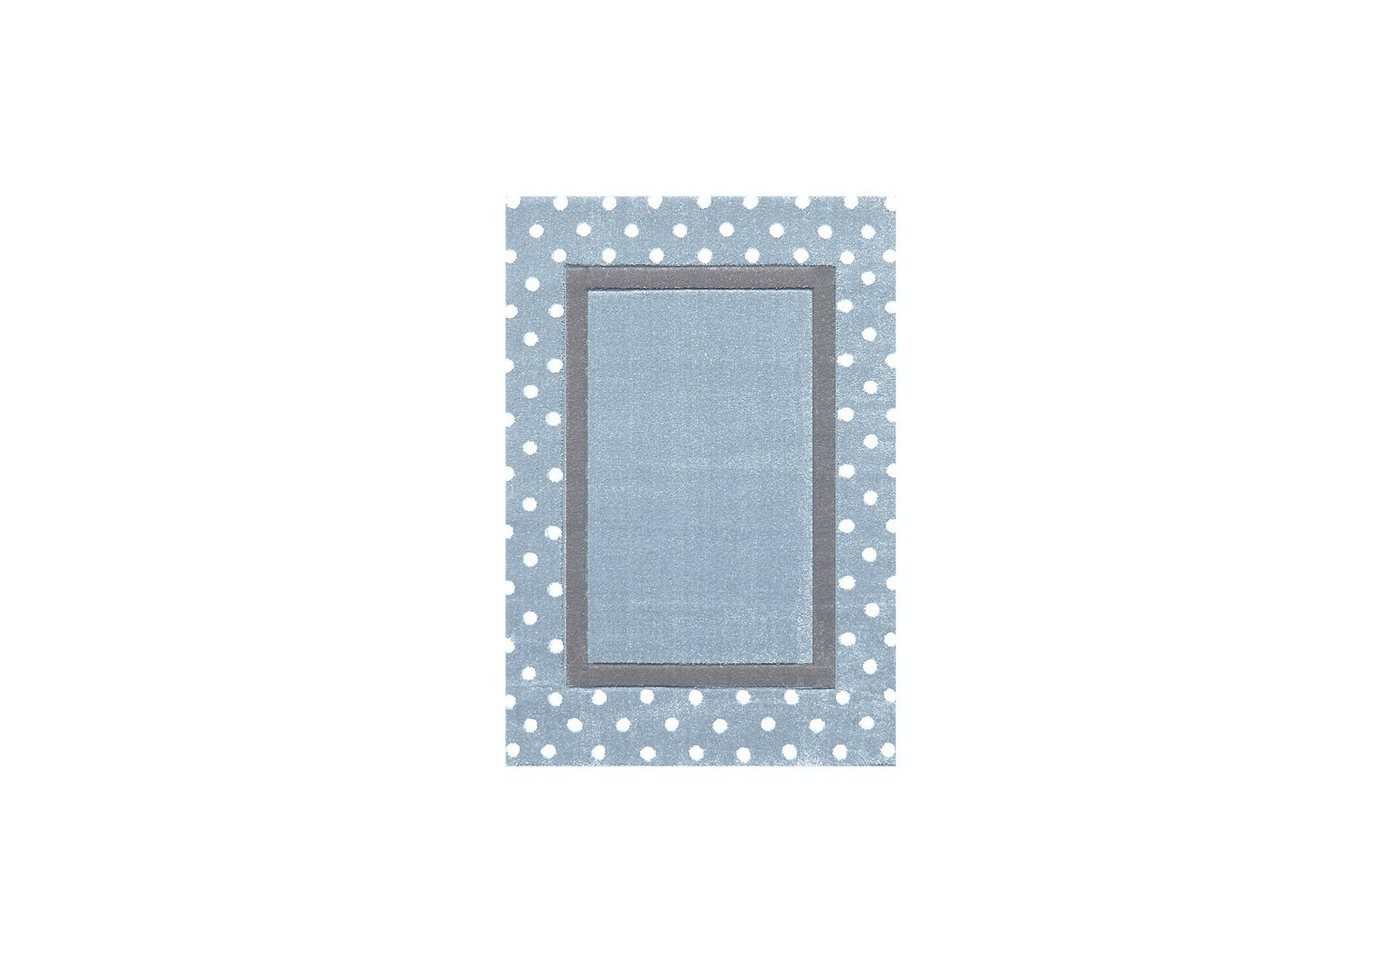 Happy Rugs Kinderteppich, POINT blau/silbergrau | Kinderzimmer > Textilien für Kinder > Kinderteppiche | Blau | Happy Rugs